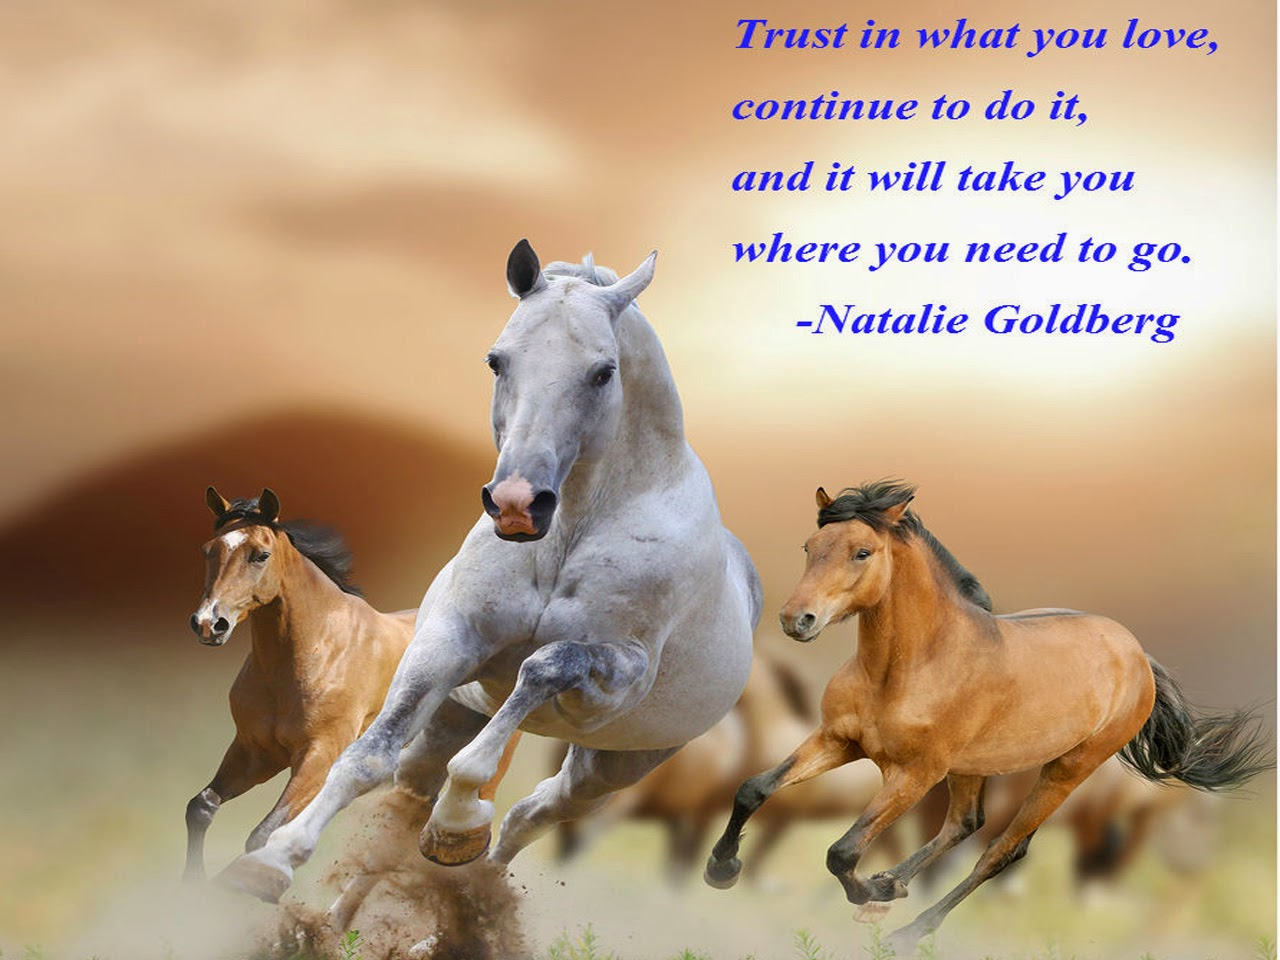 """Trust in what you love continue to do it"